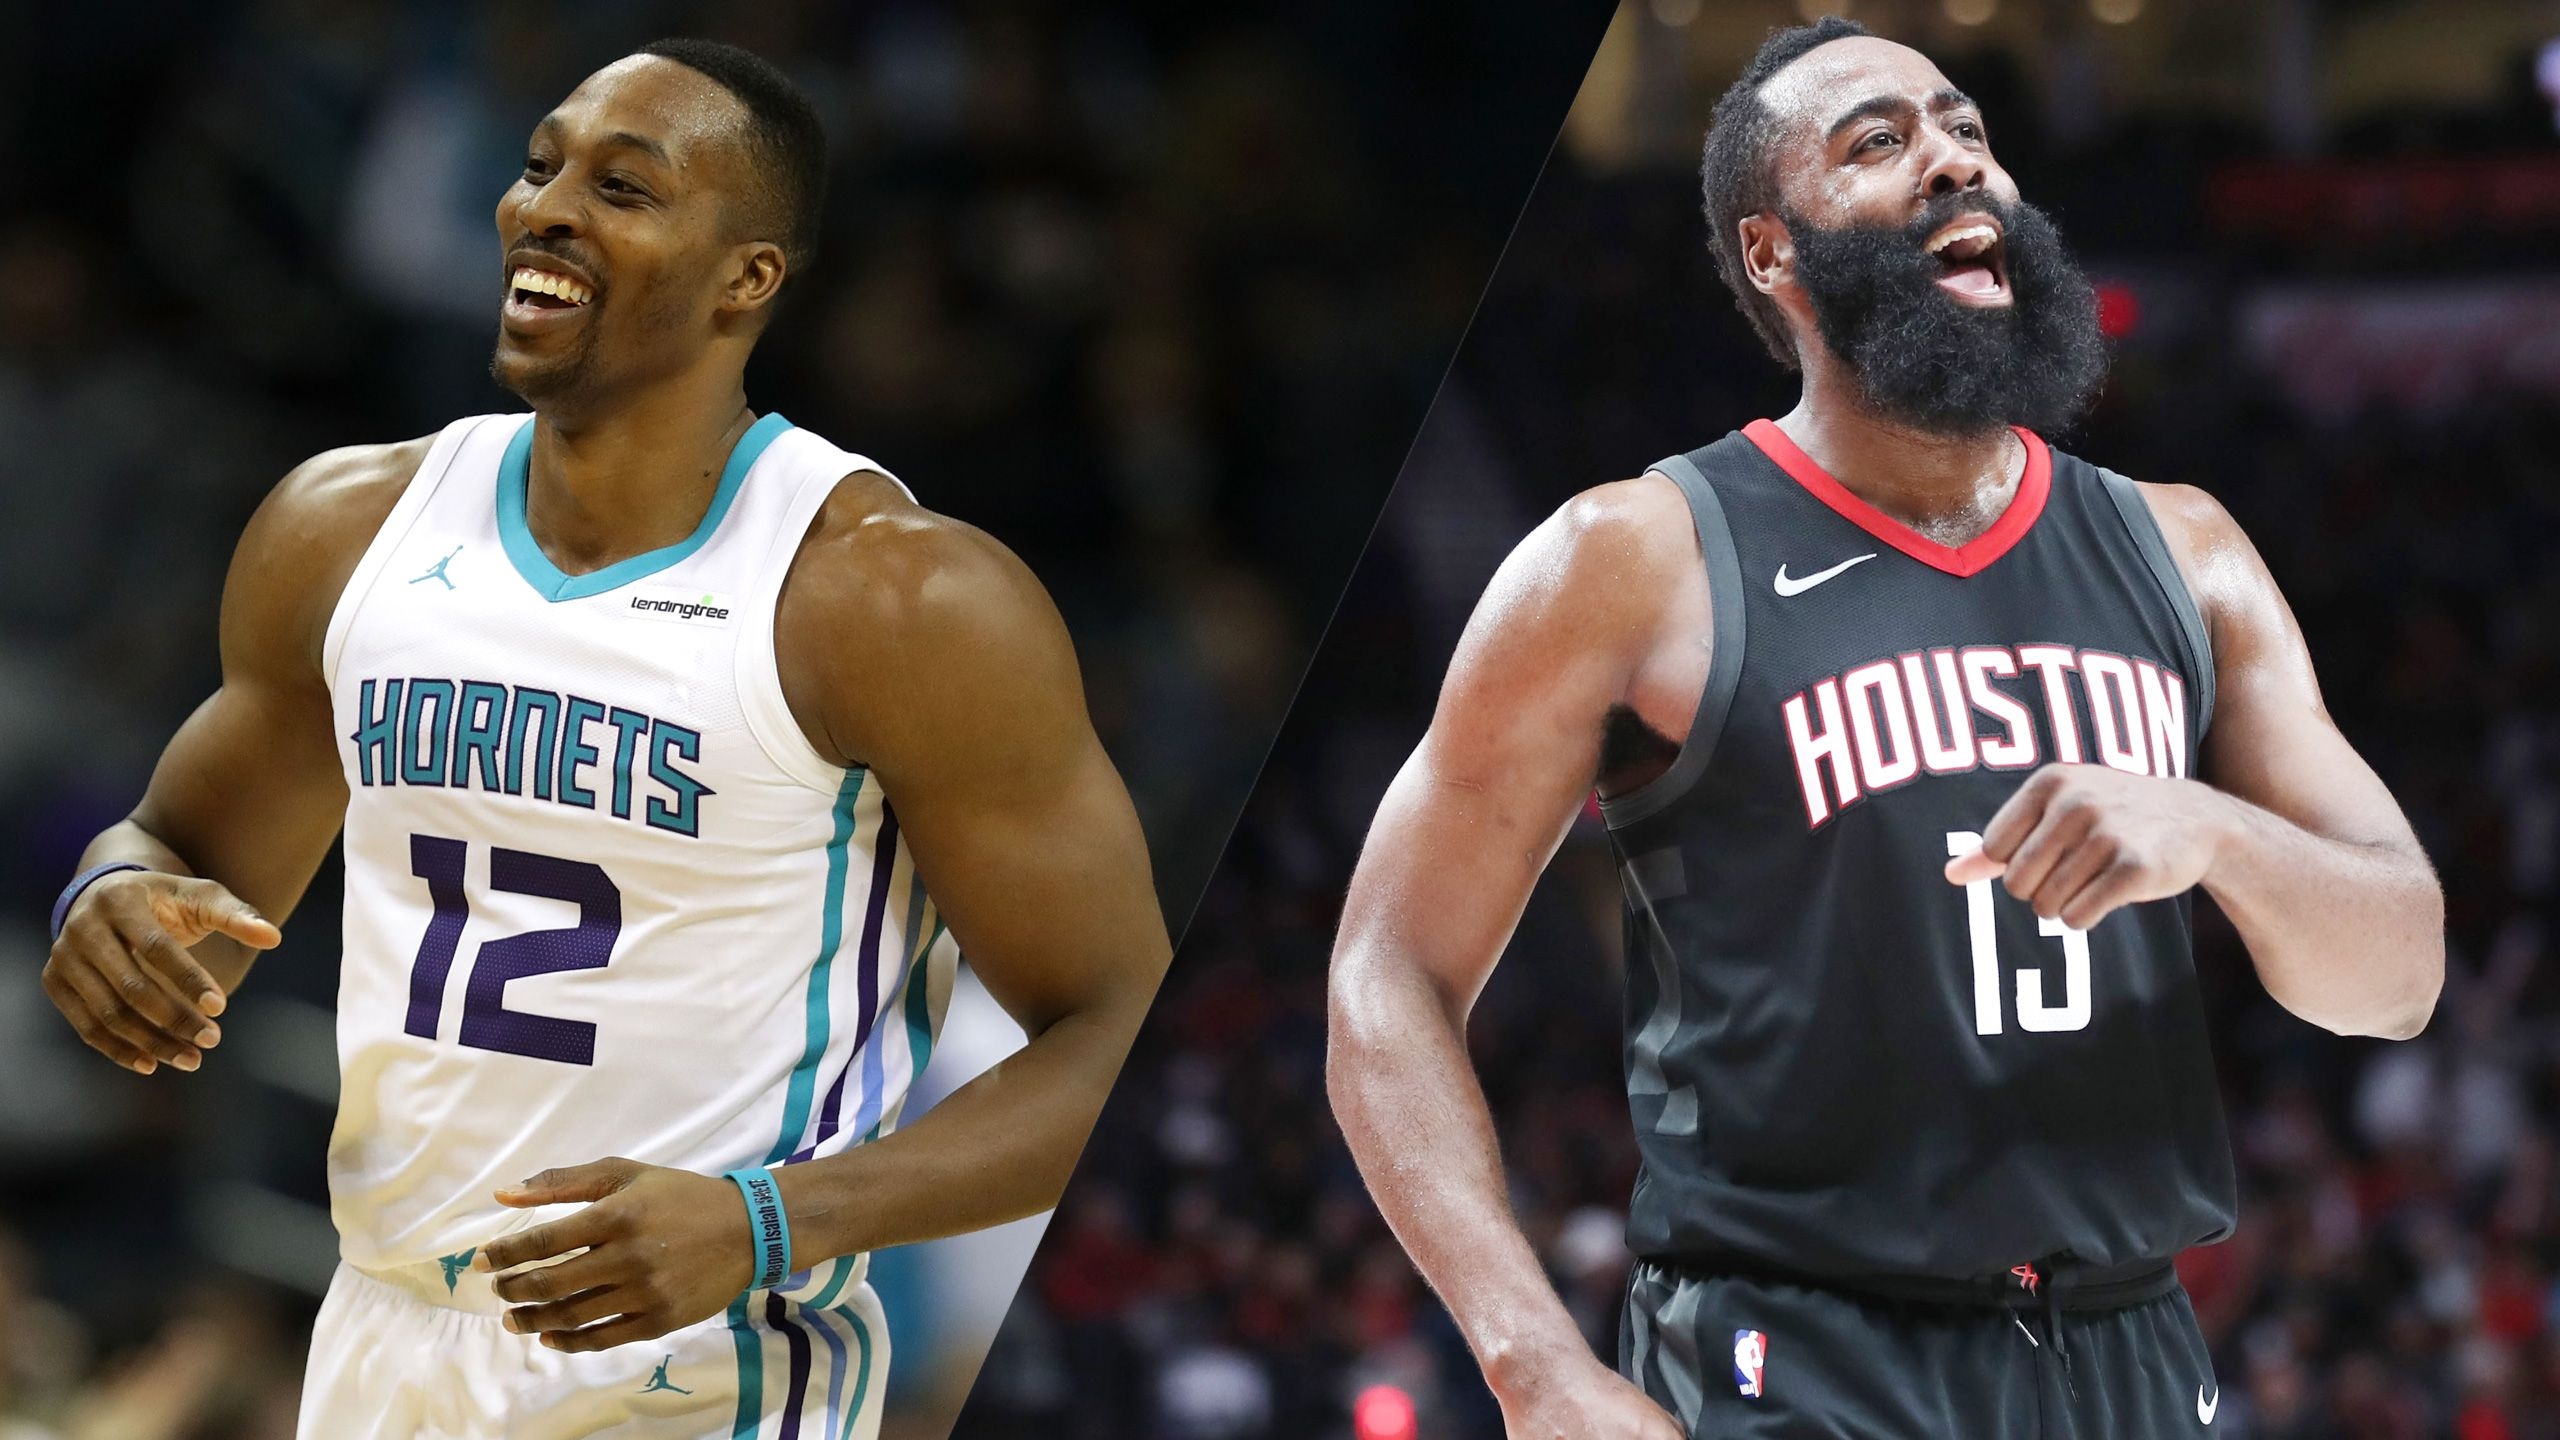 Charlotte Hornets vs. Houston Rockets (re-air)